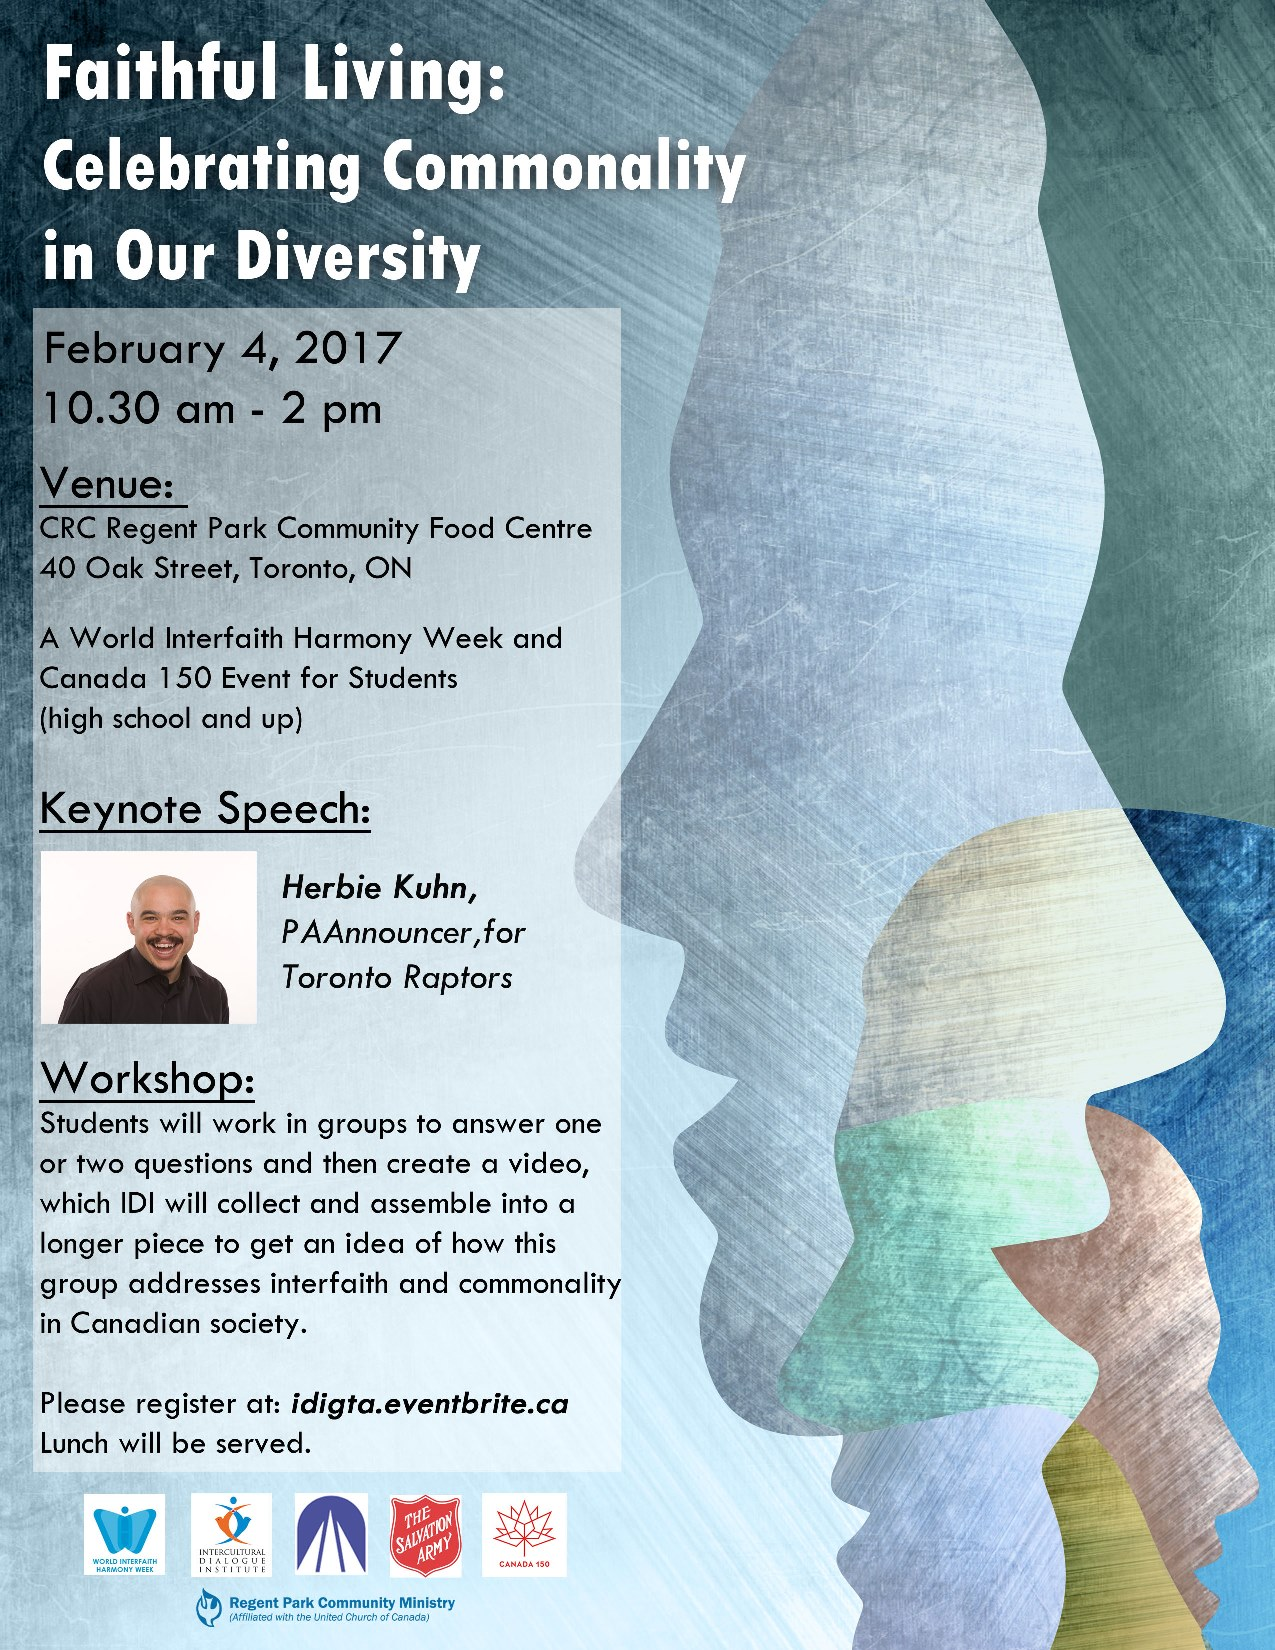 Herbie Kuhn, Celebrating Diversity in Our Commonality, Intercultural Dialogue Institute